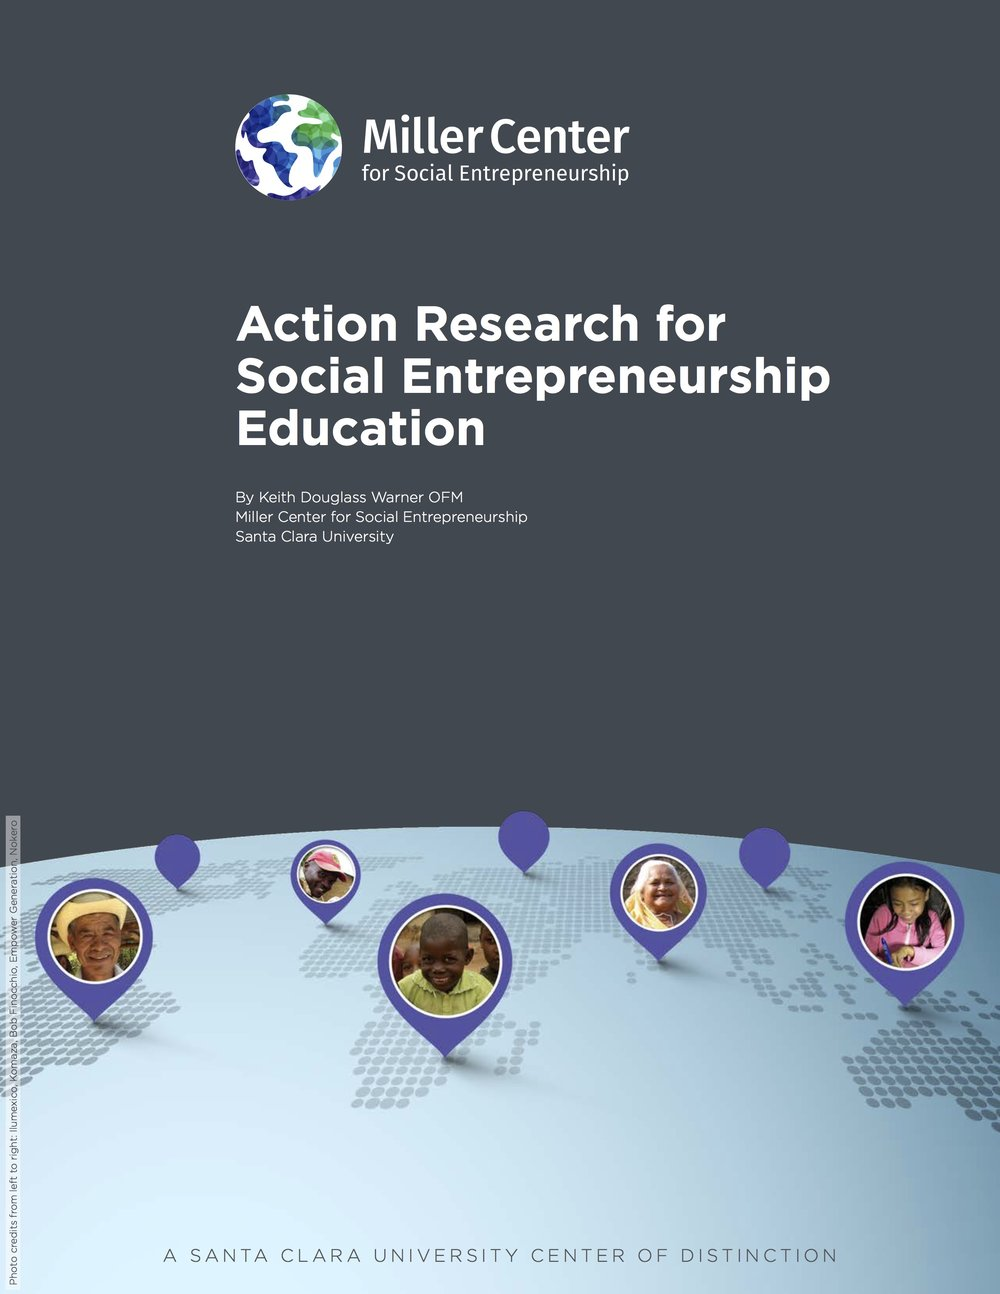 Action Research for Social Entrepreneurship Education White Paper